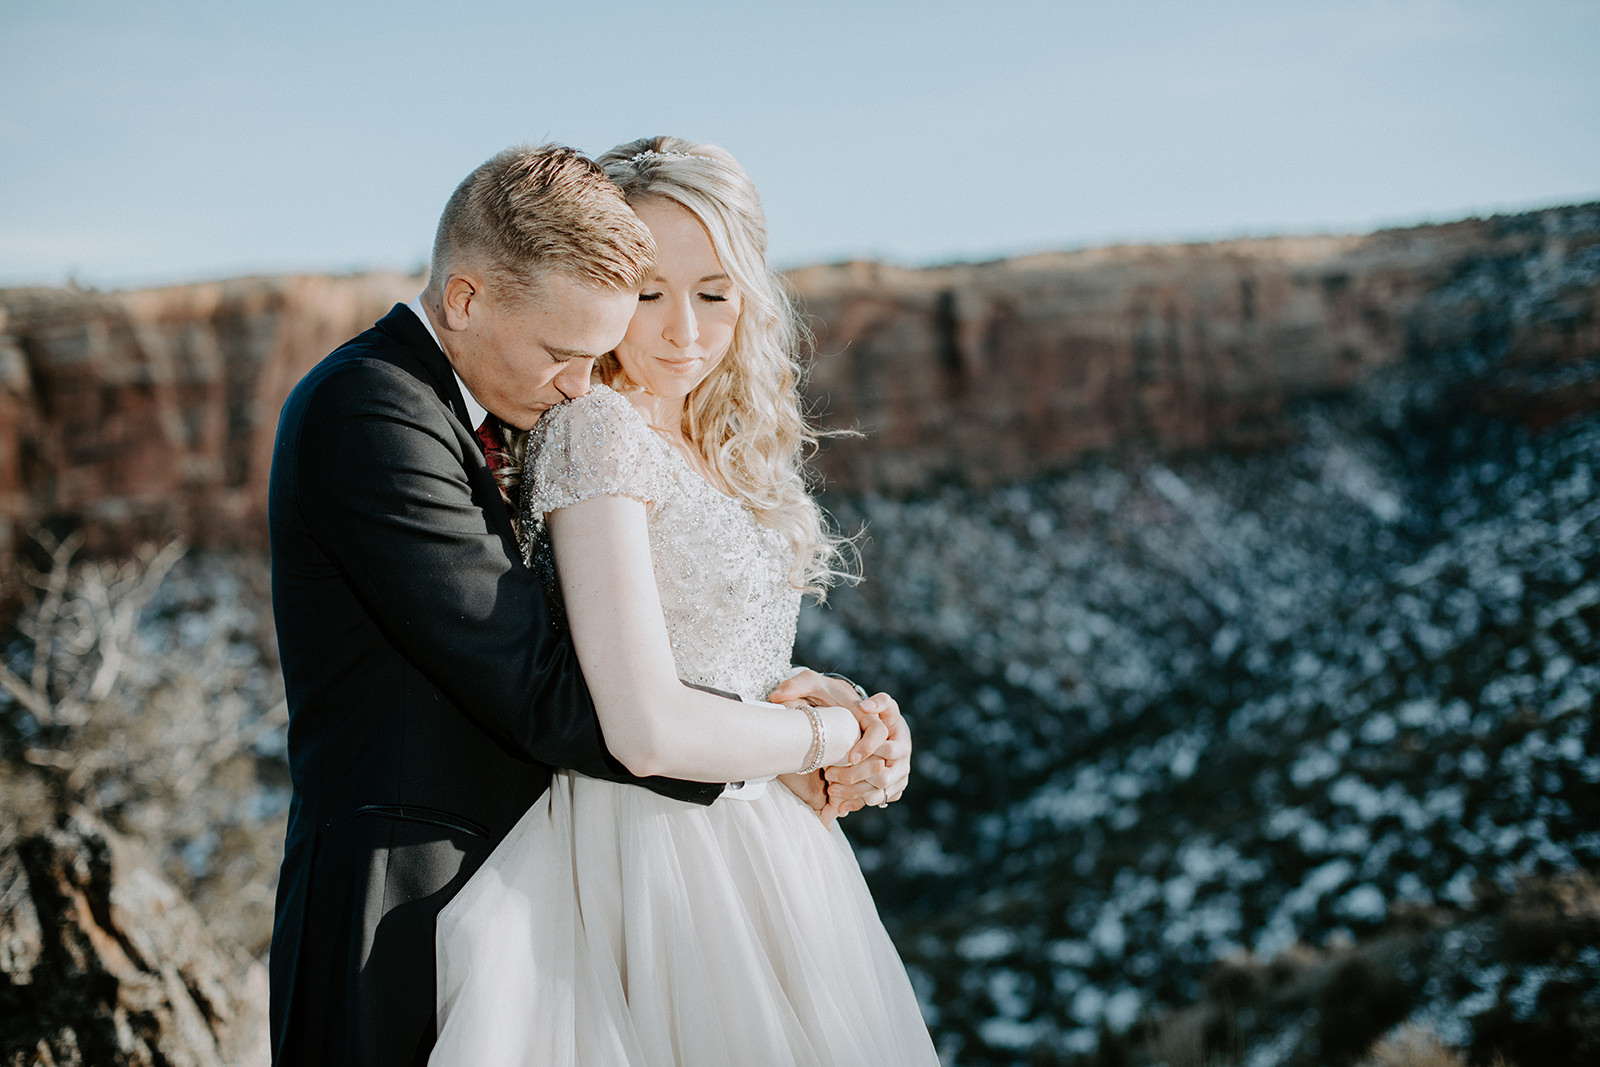 Groom kissing bride's shoulder from behind with red cliff behind them